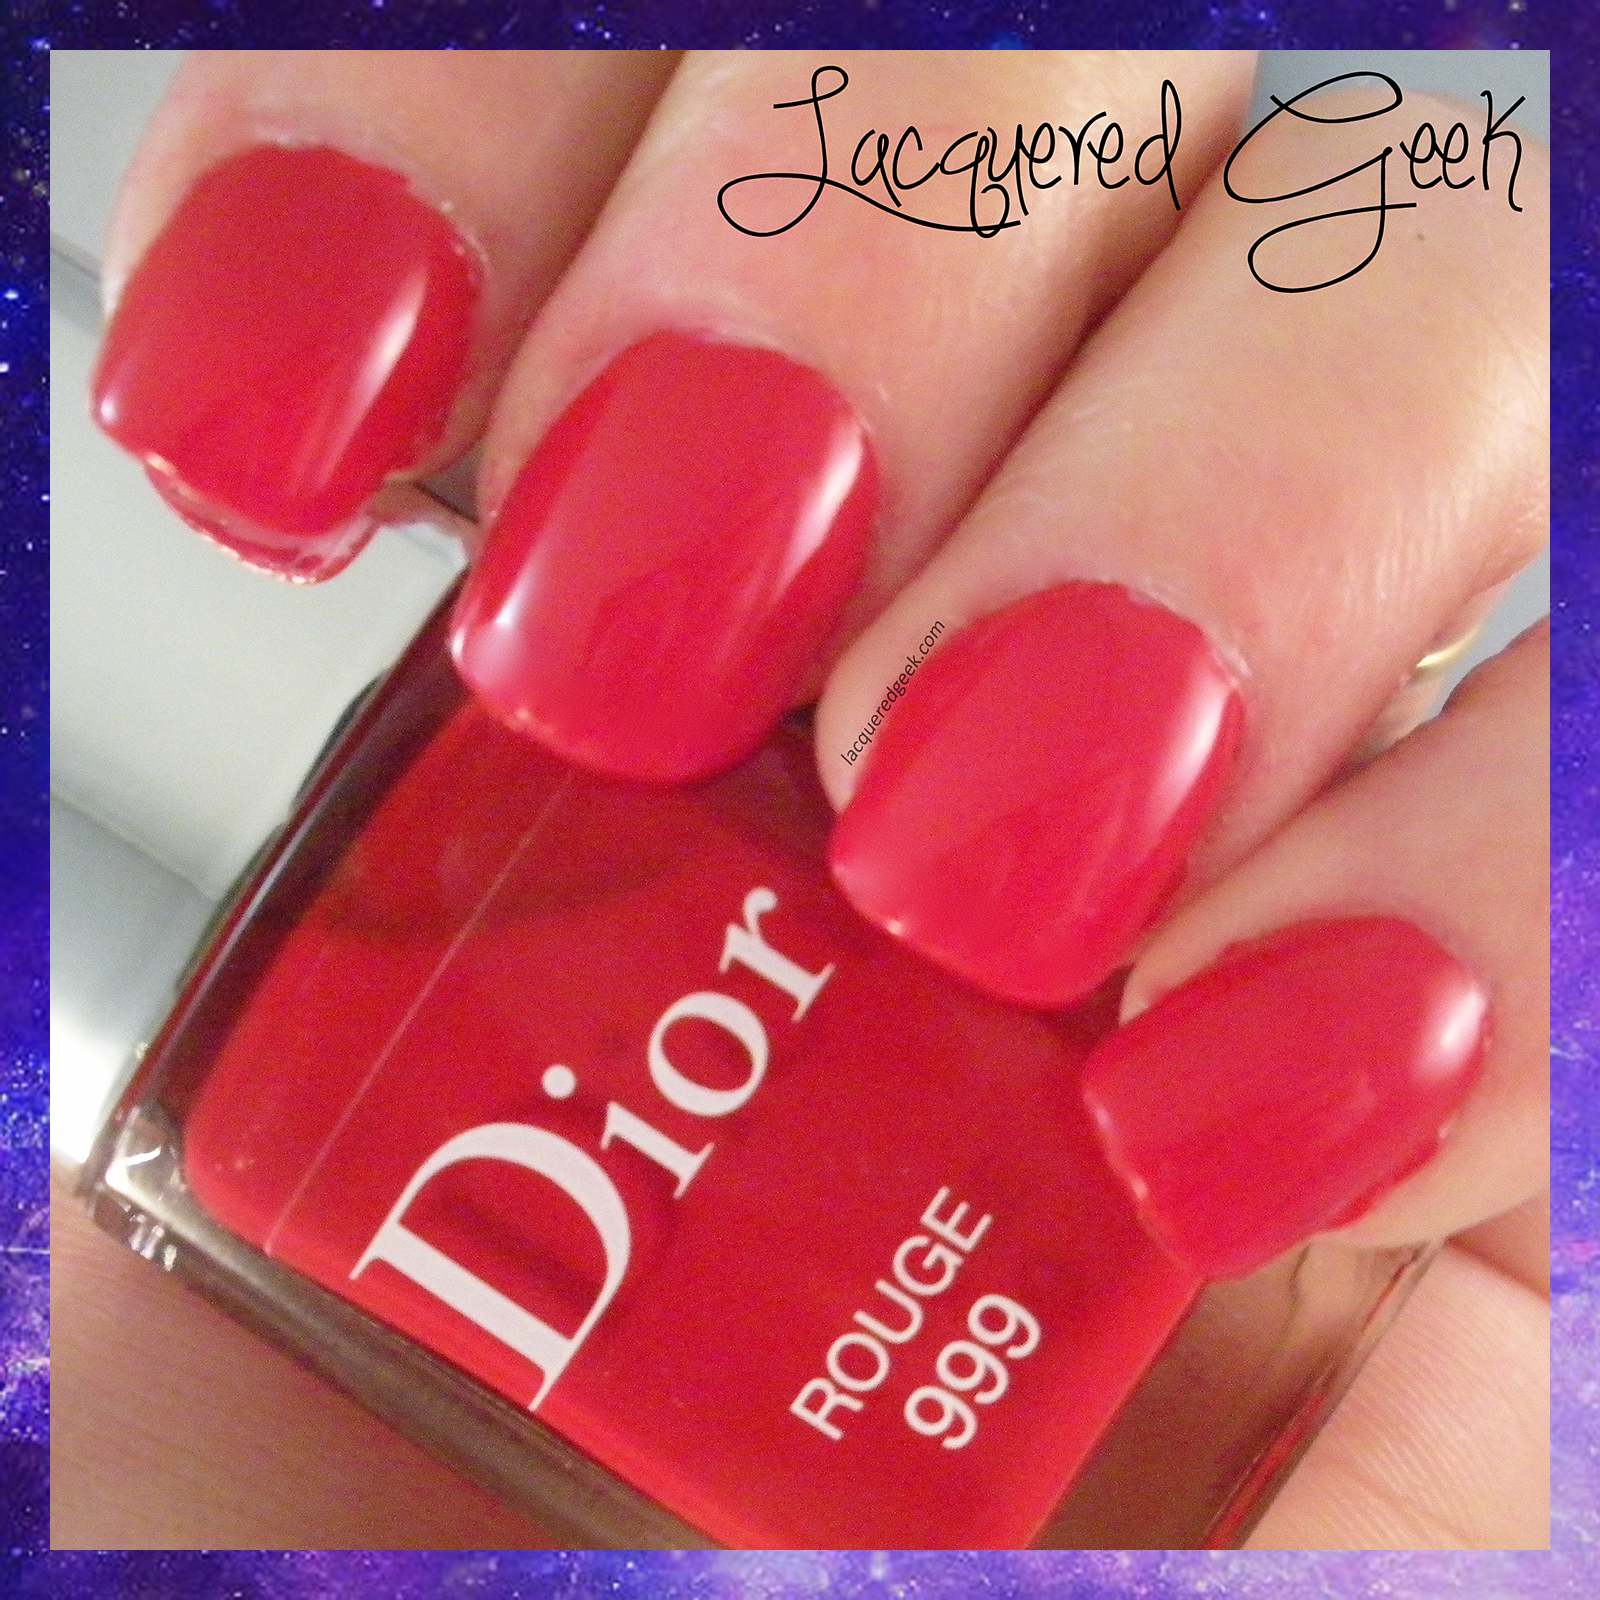 Dior Rouge #999 swatch